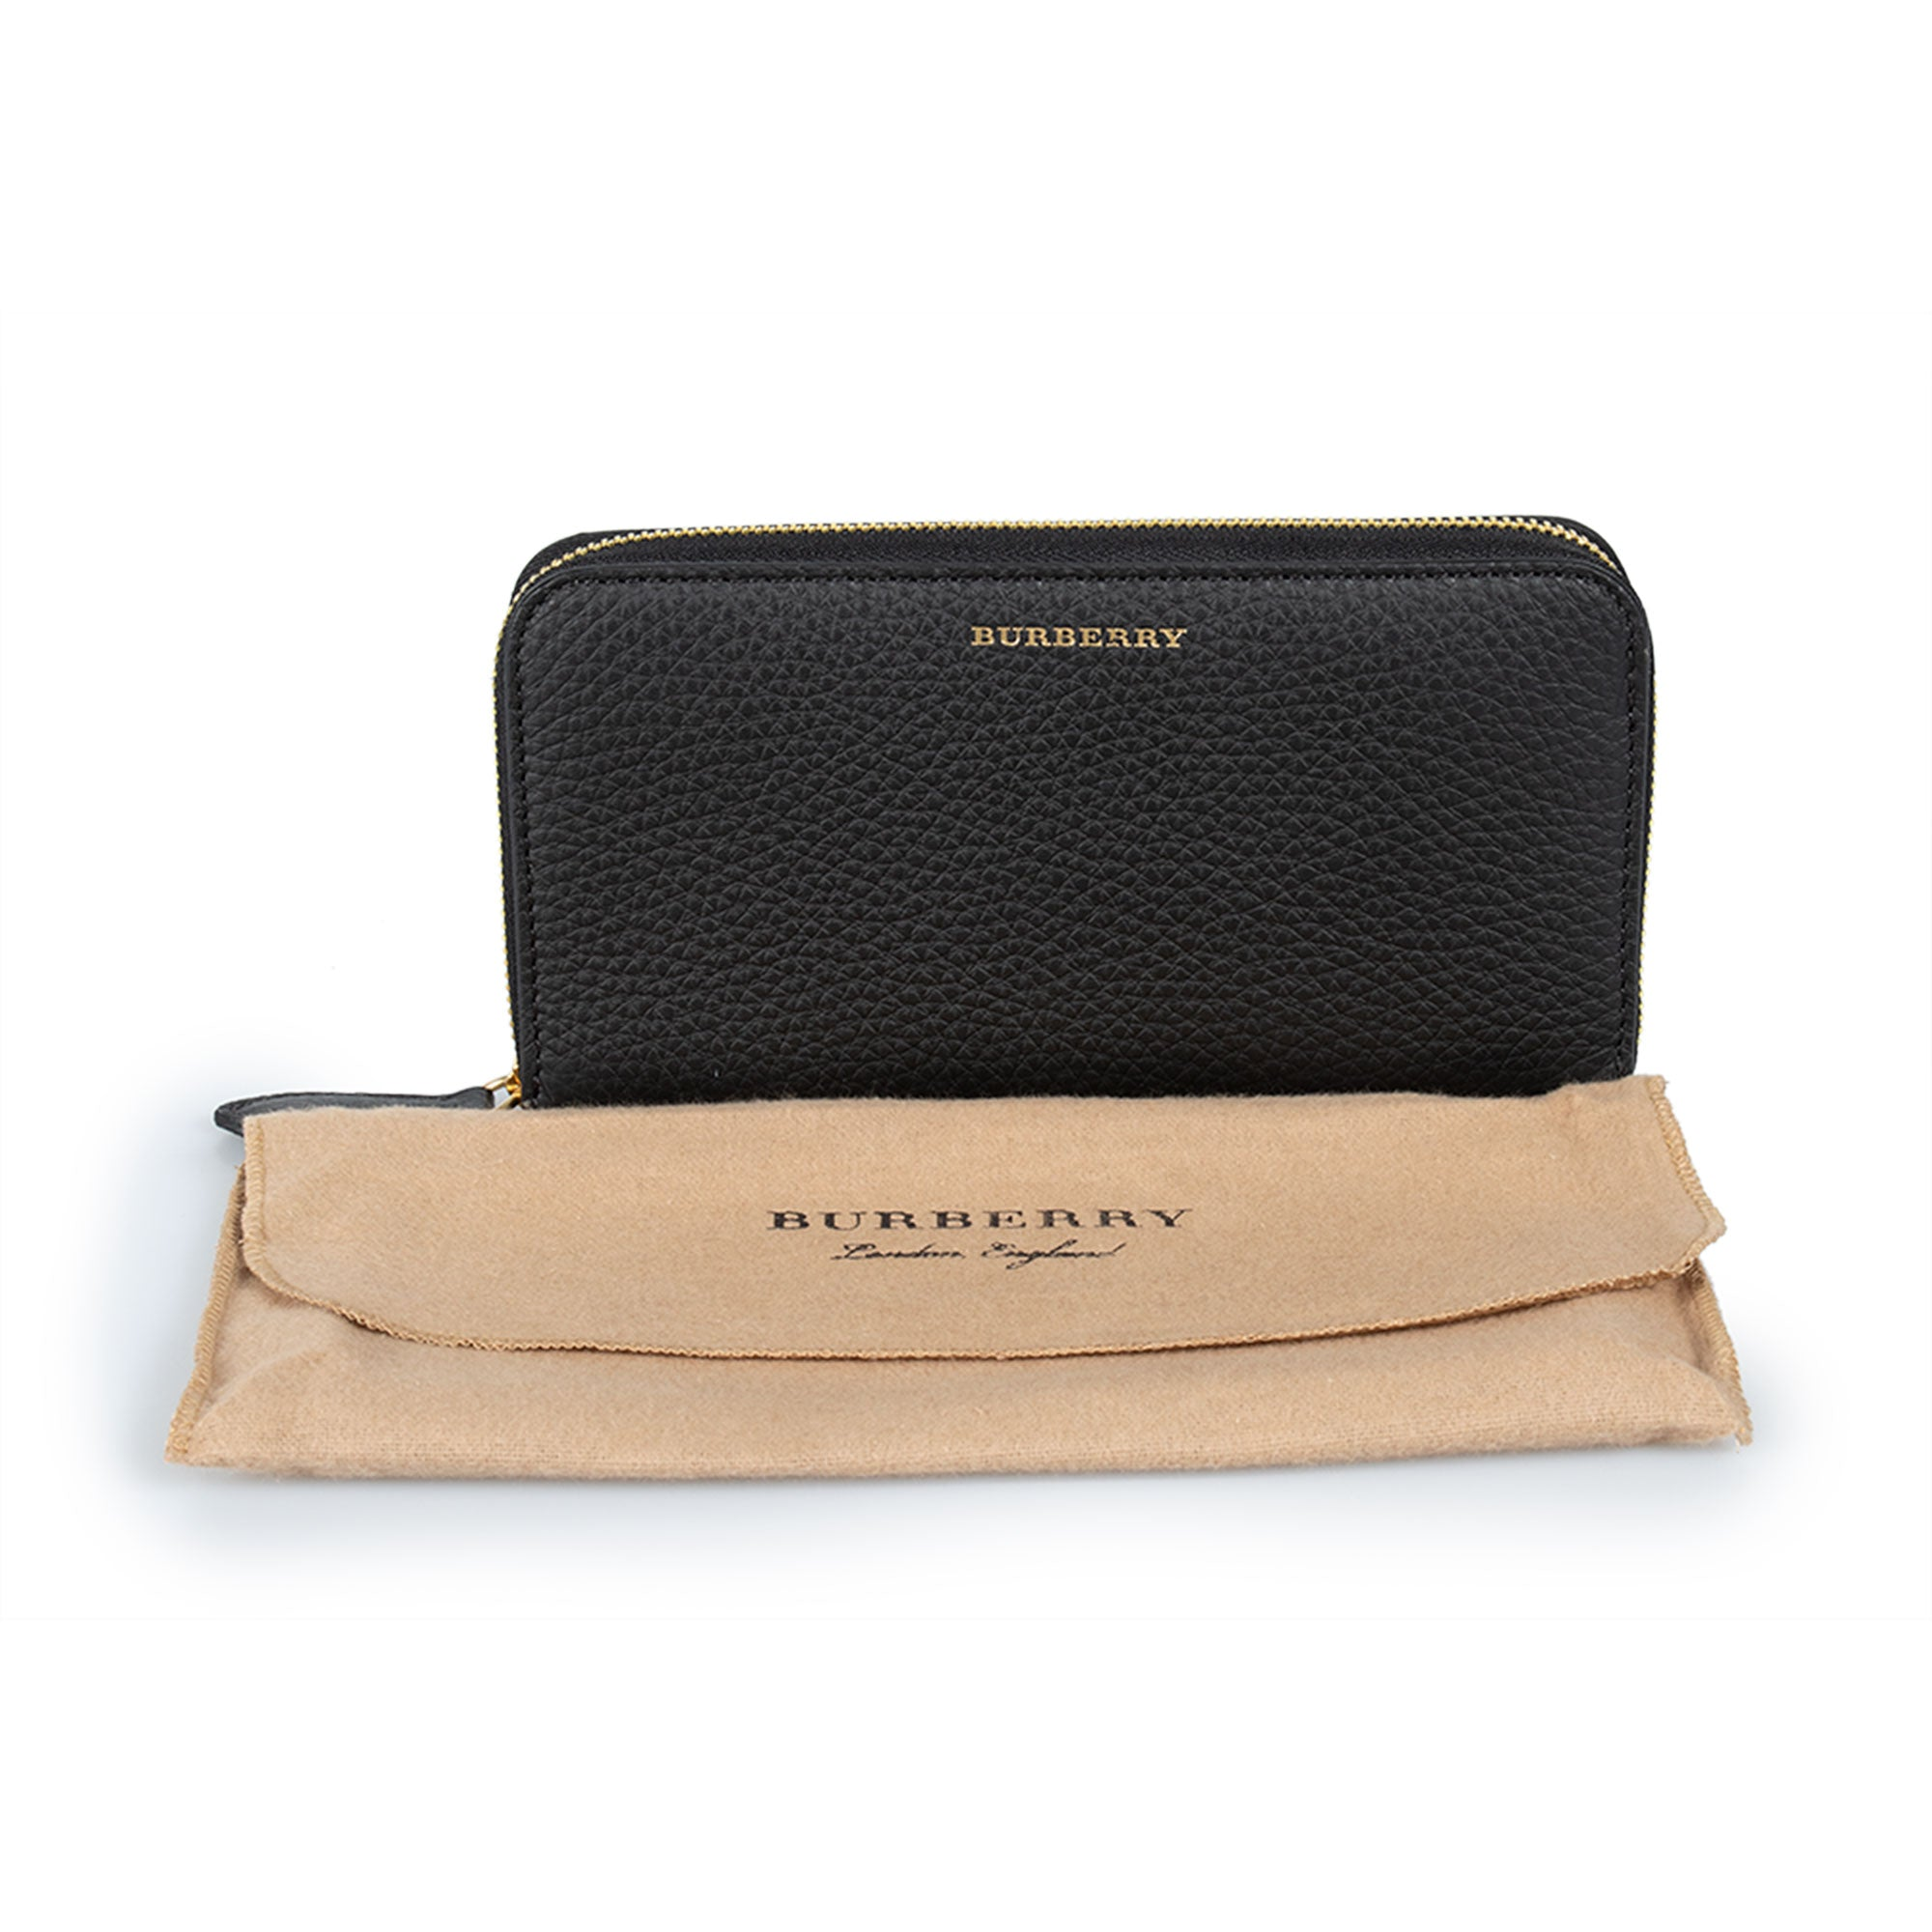 Burberry Burberry Elmore London Black Smooth Leather Zip Around Wallet